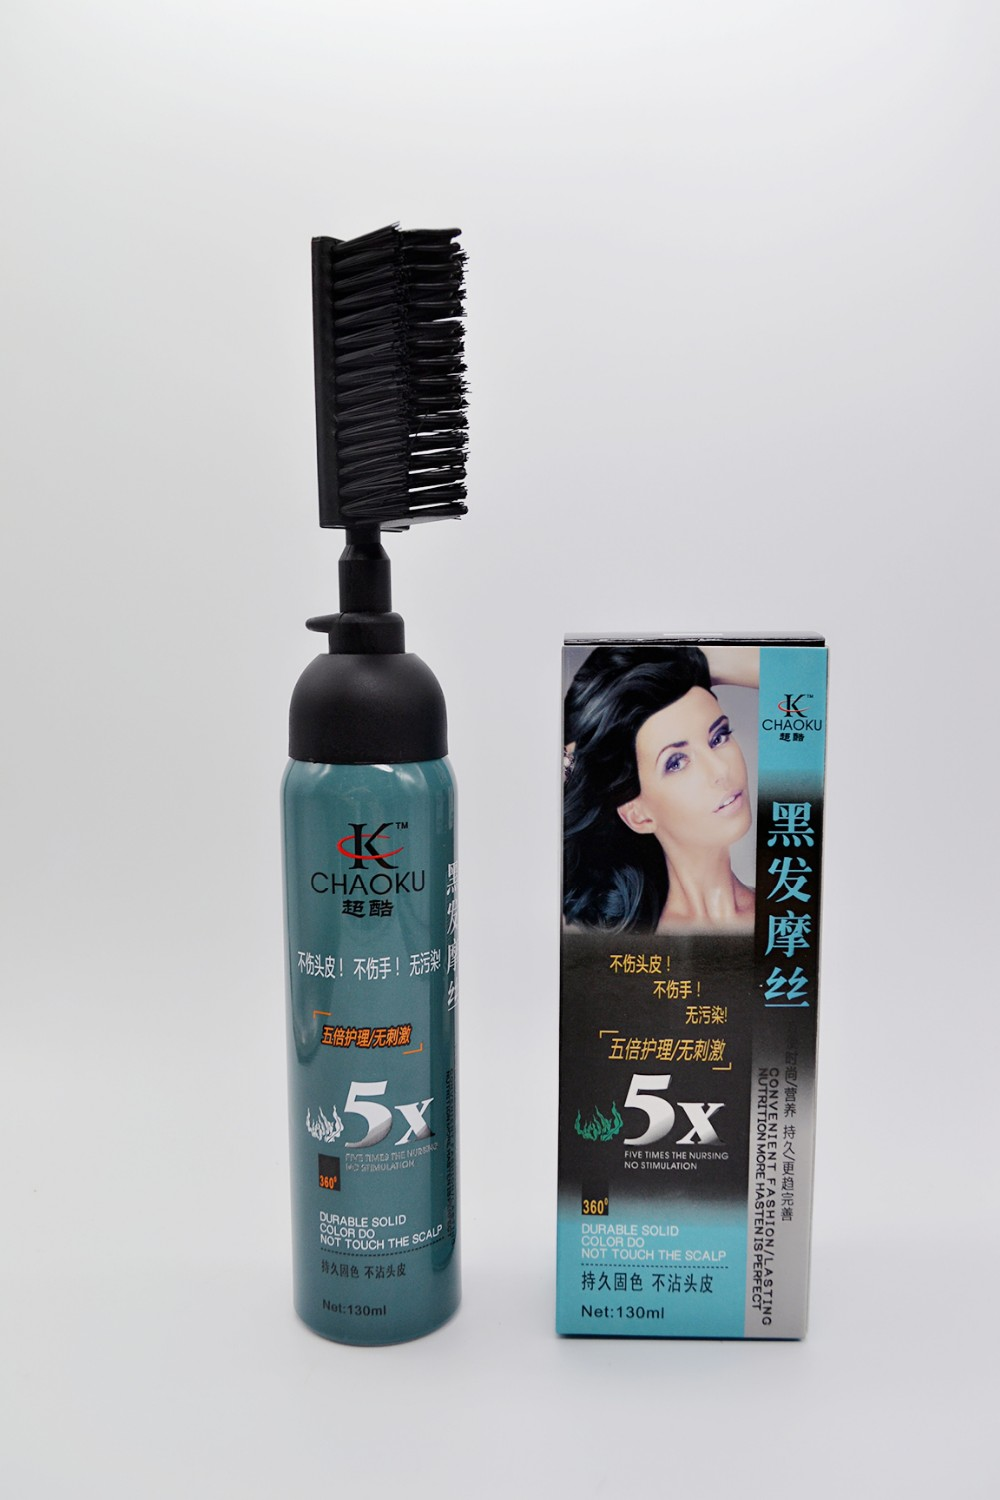 Semipermanent black henna hair dye / the black magic combs hair dye